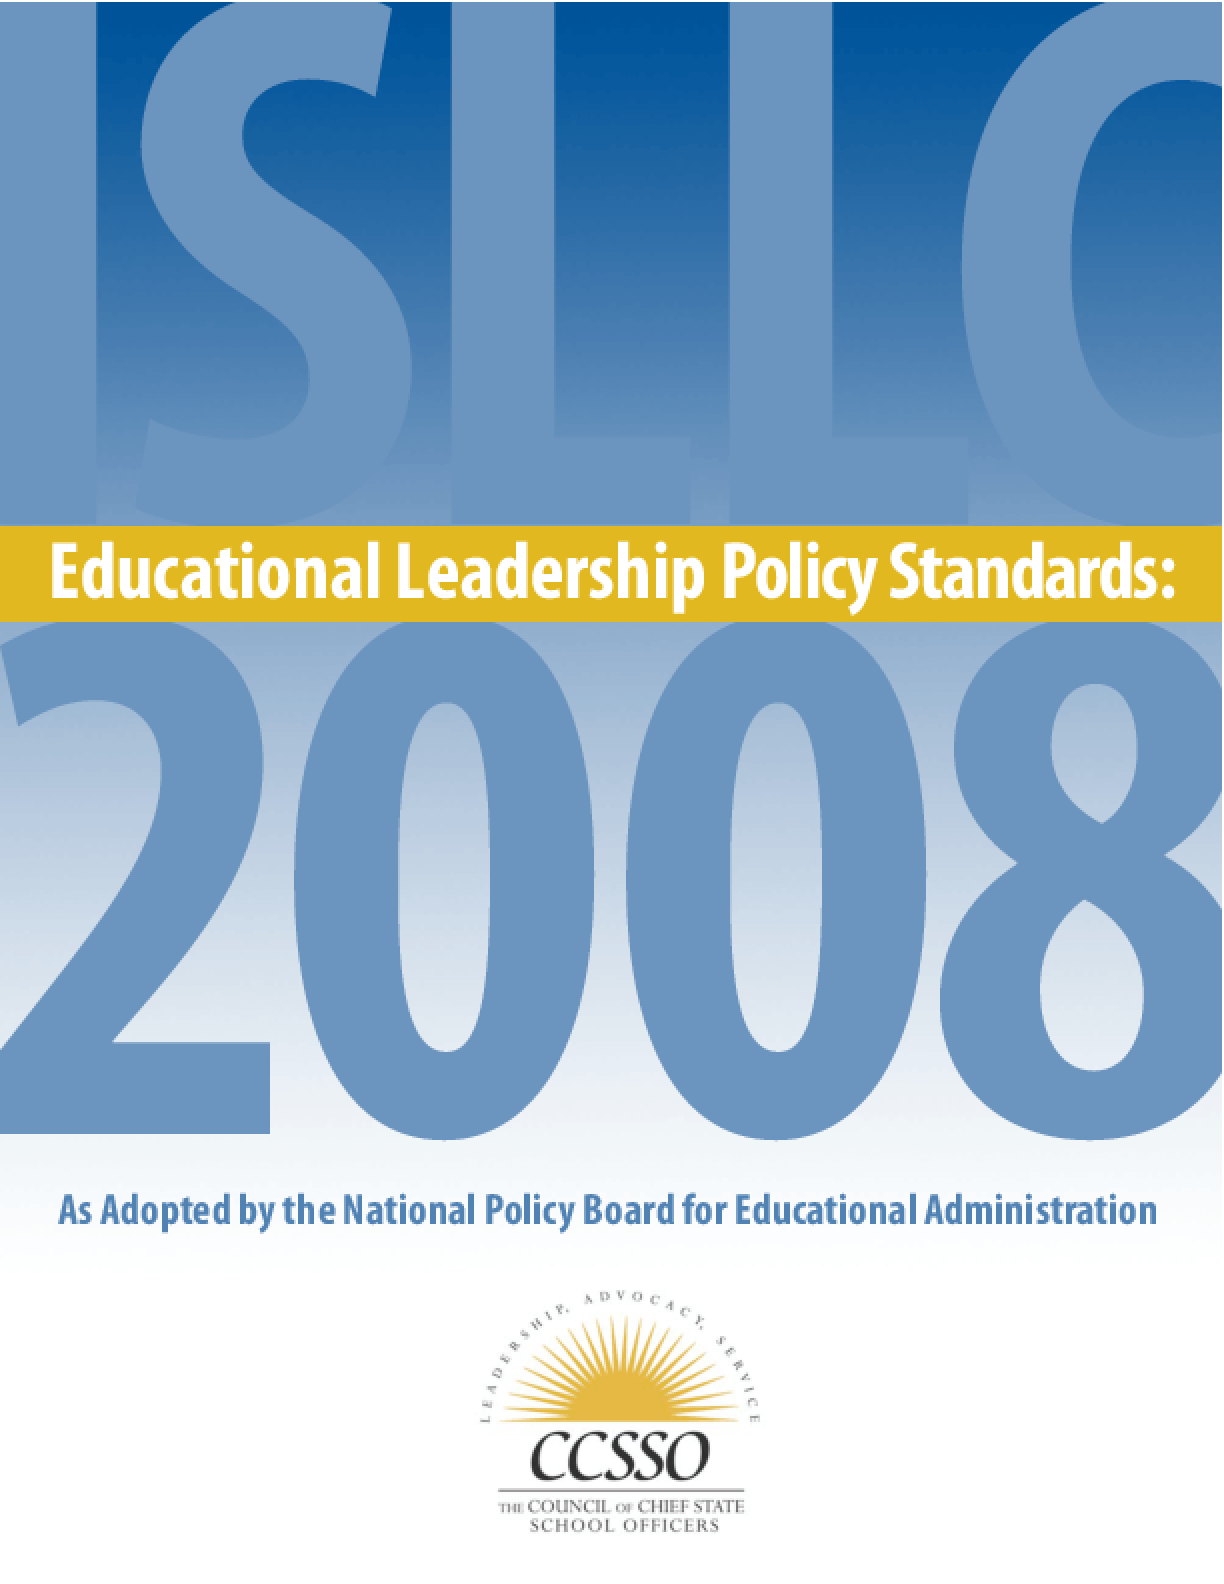 Educational Leadership Policy Standards: ISLLC 2008